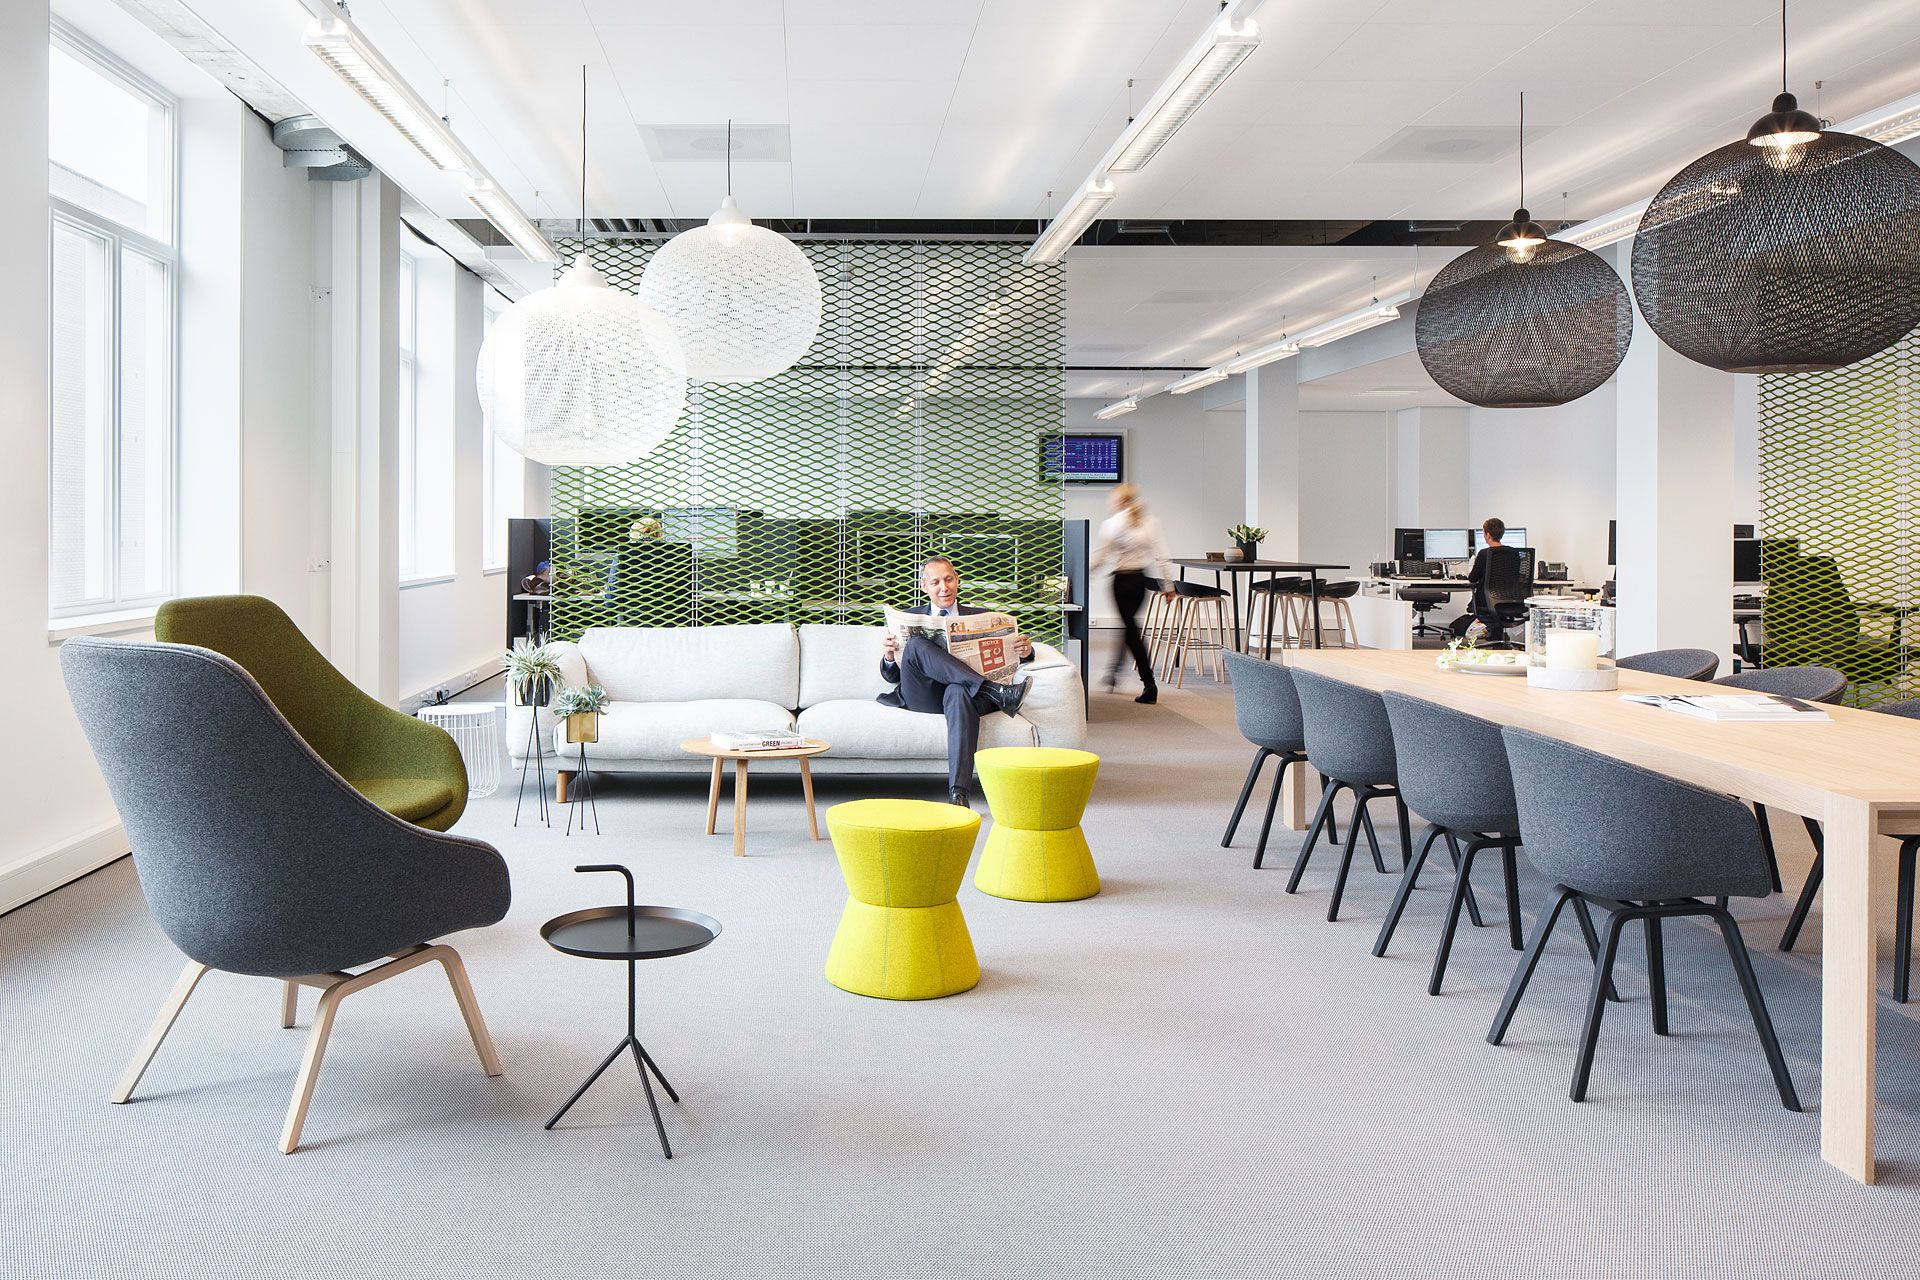 interieur kantoor - Google zoeken | Office image | Pinterest